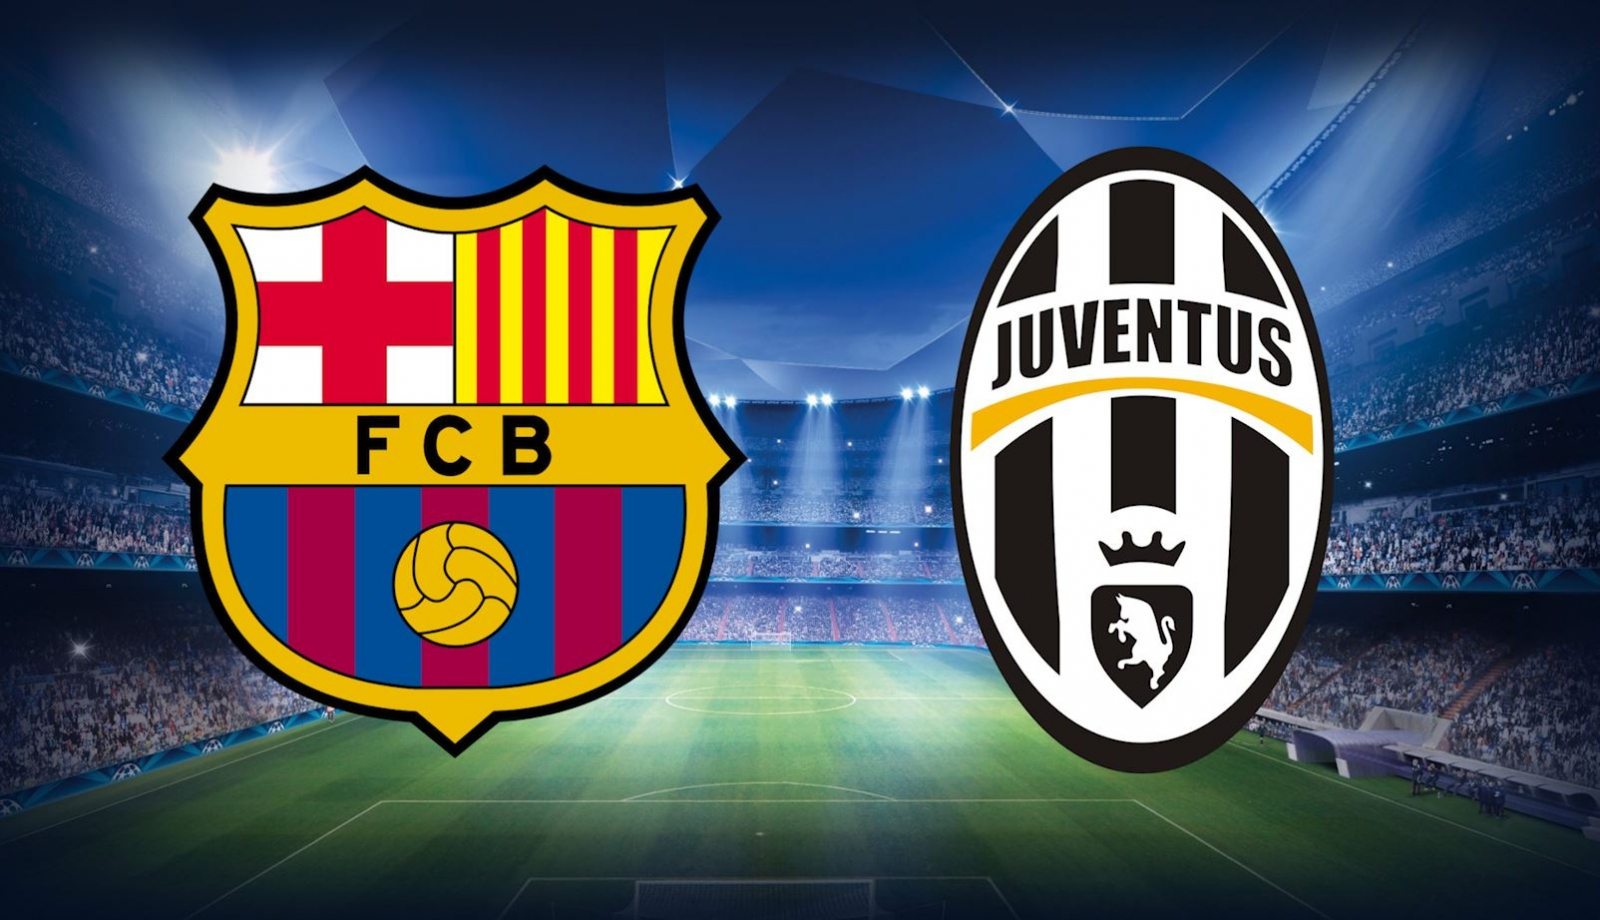 Real Madrid Hd Wallpapers 3d Barcelona V Juventus Champions League Final 2015 Preview